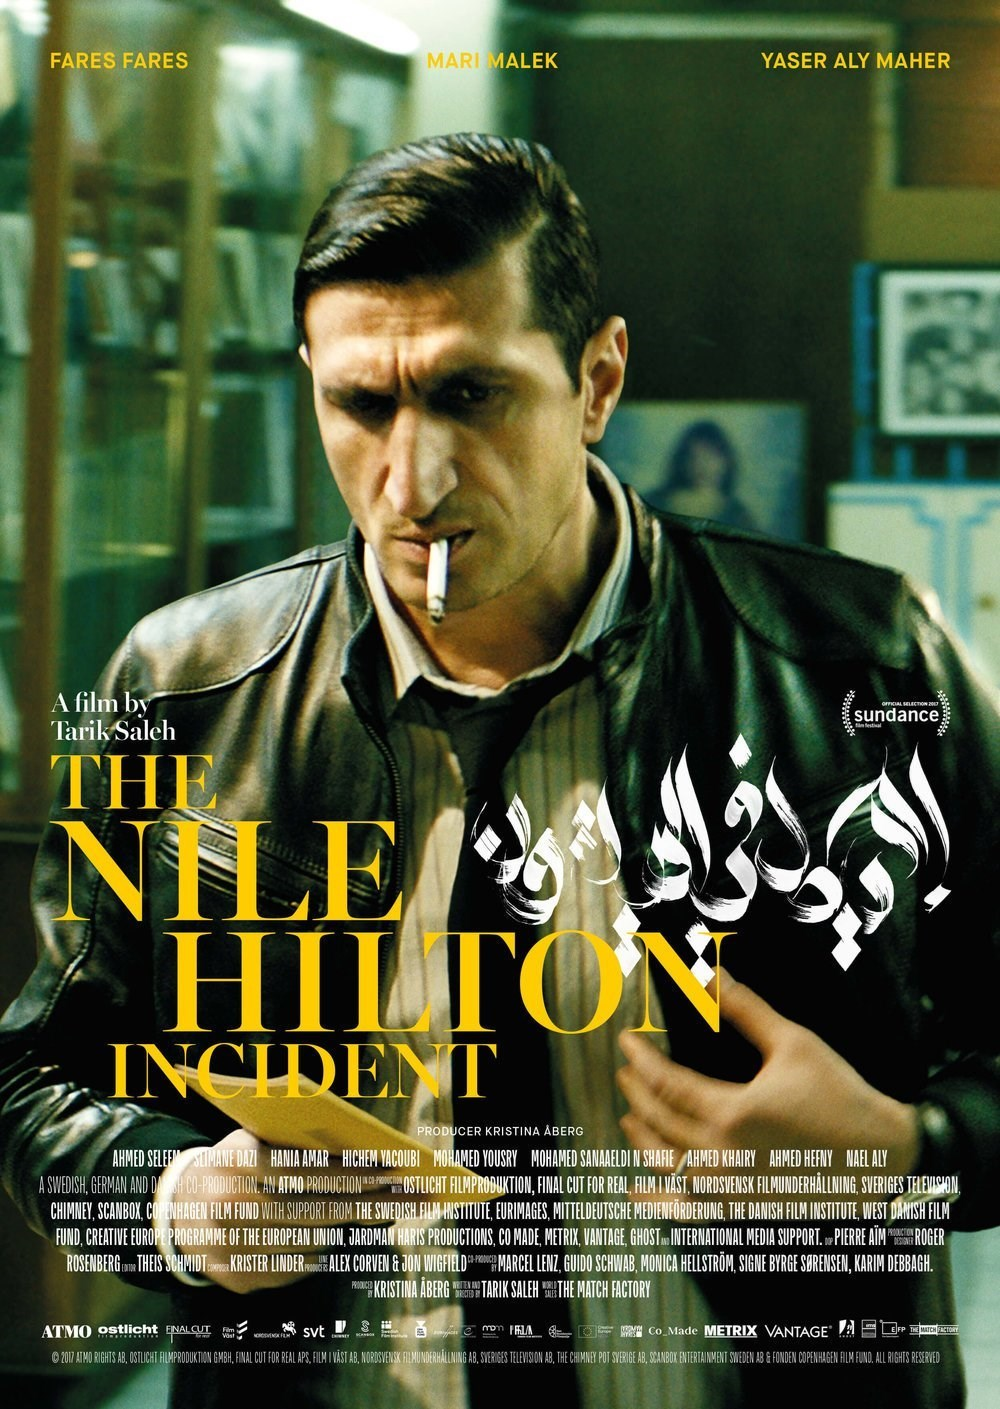 the_nile_hilton_incident-990692108-large